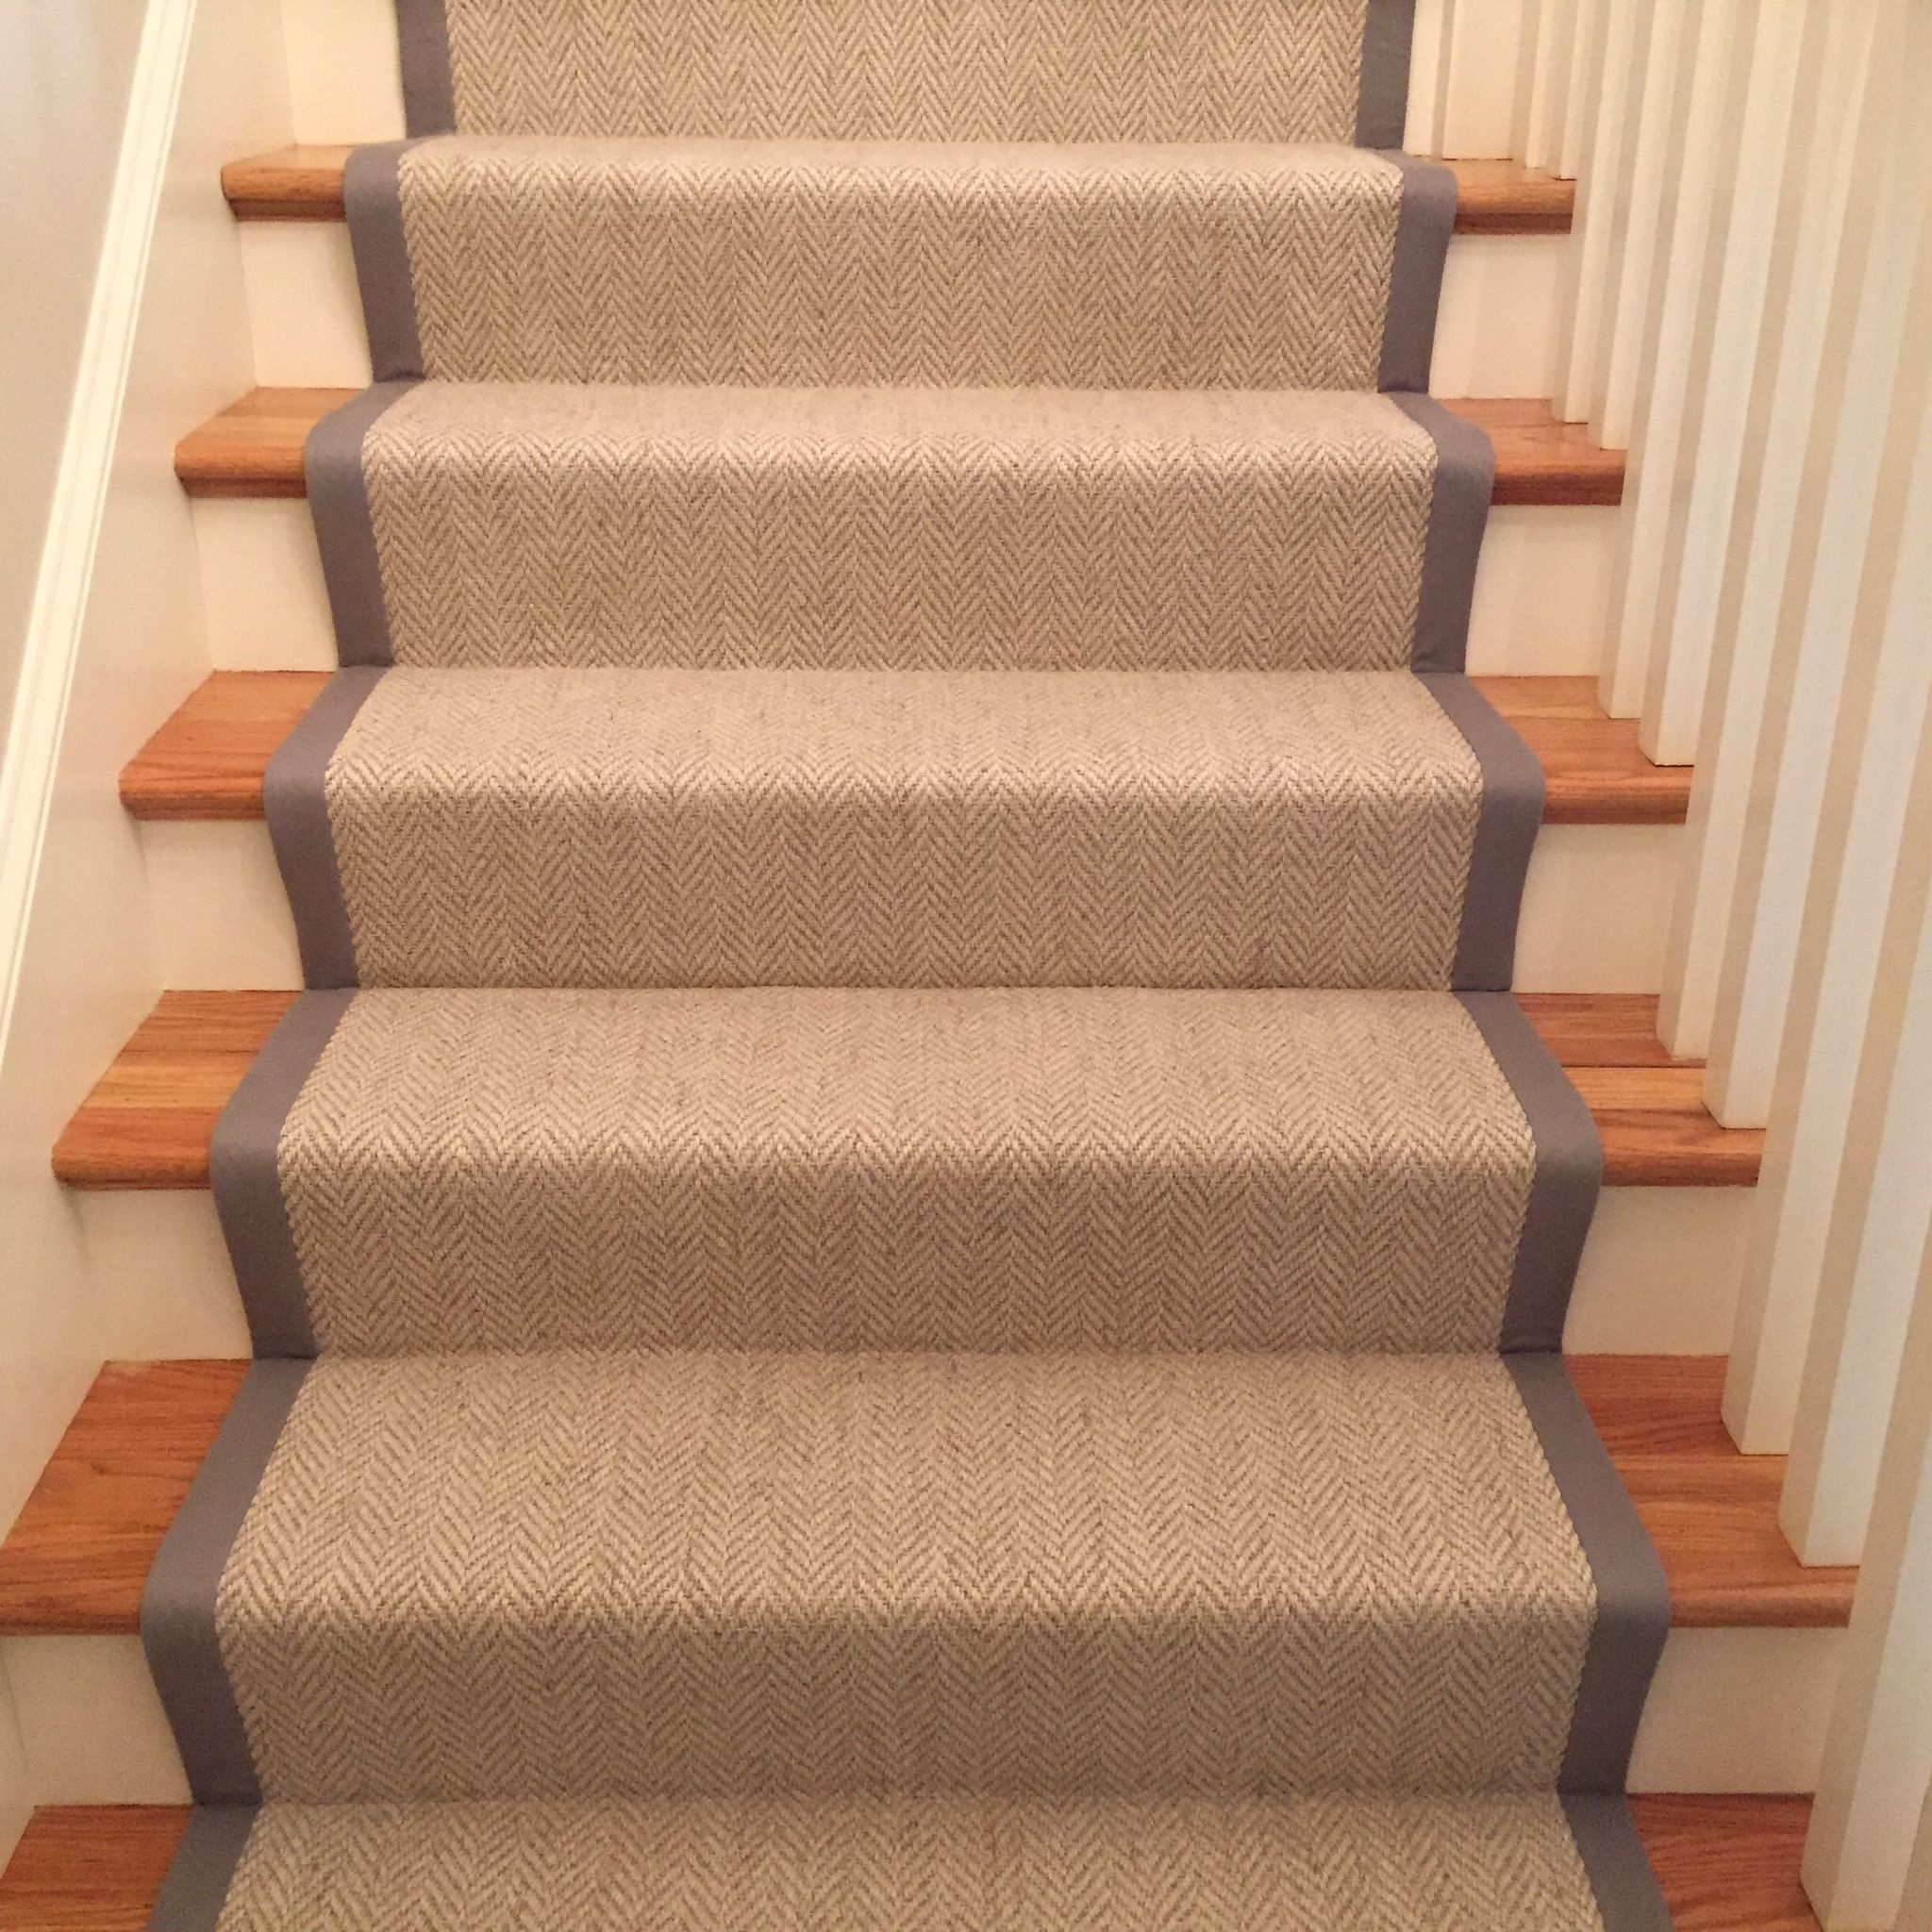 Best Momenirug Herringbone Stair Runner Bedroom Carpet 400 x 300